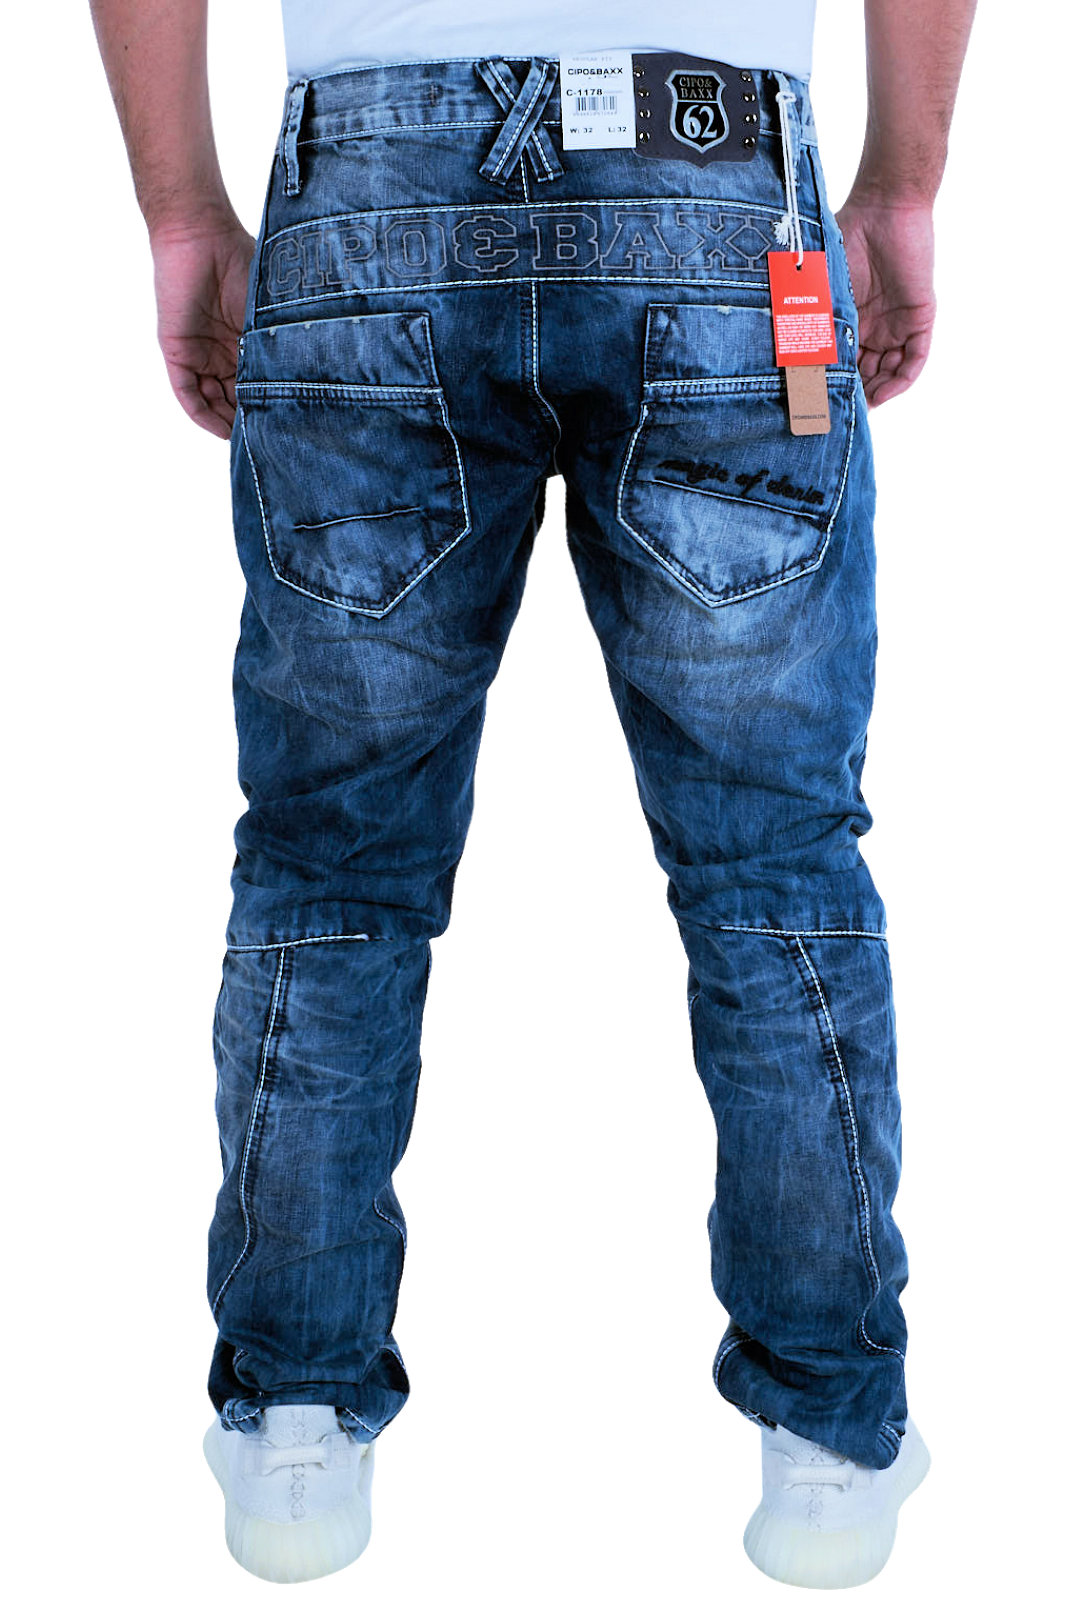 Denim CipoBaxx Jeans 1178 Mode en C Pantacourt Pantalon Couture uOZiXPkT